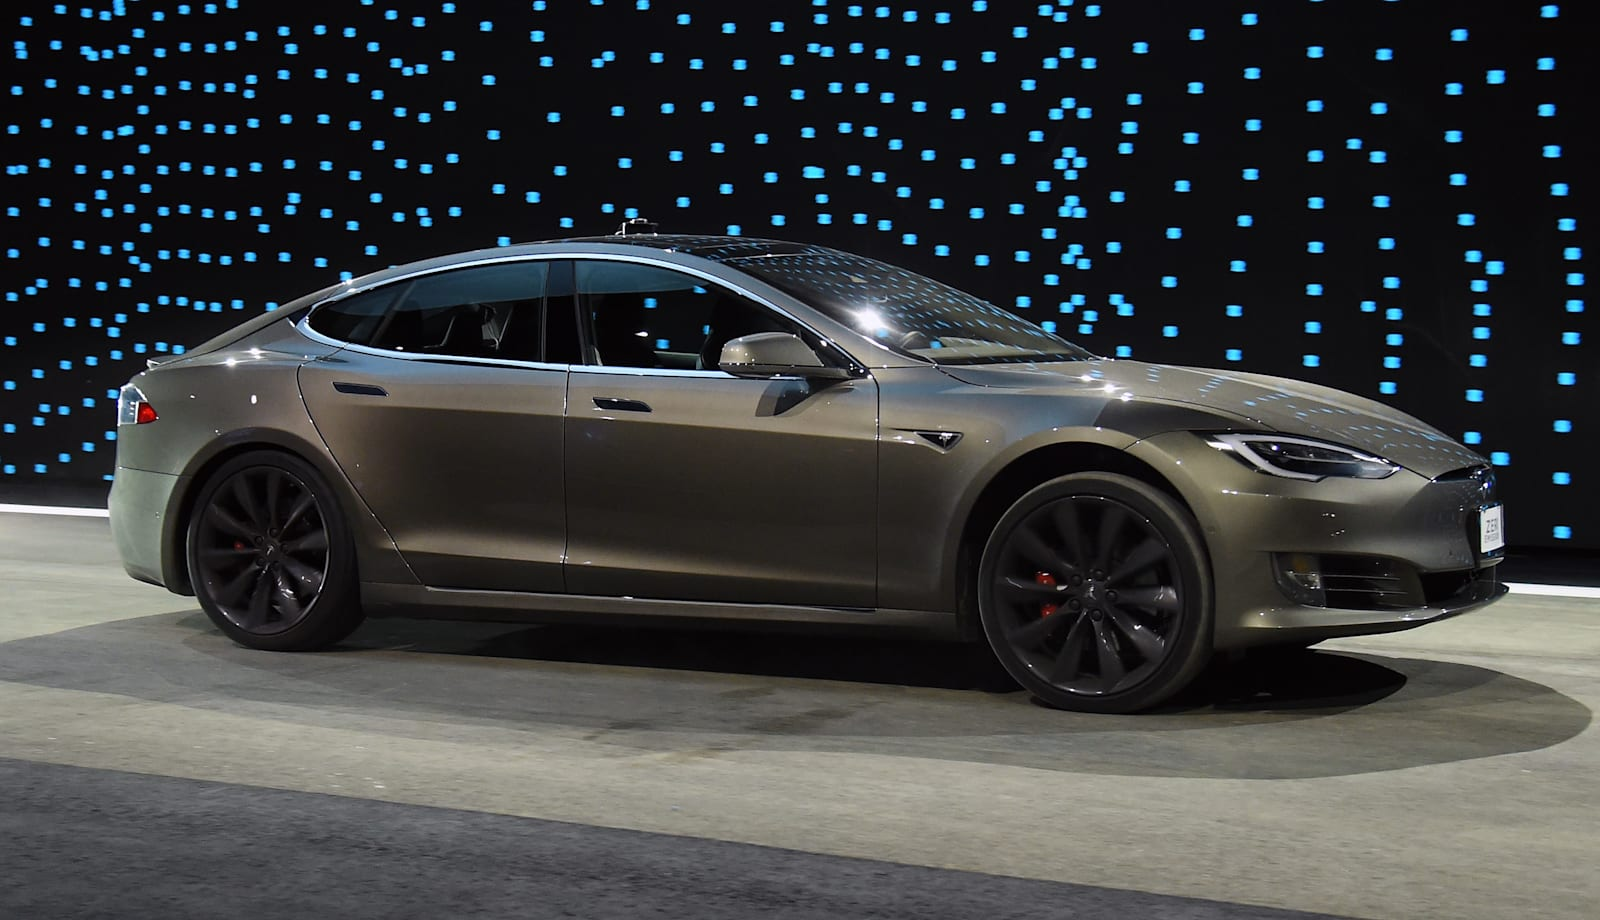 Tesla revives automatic braking in response to lower review scores